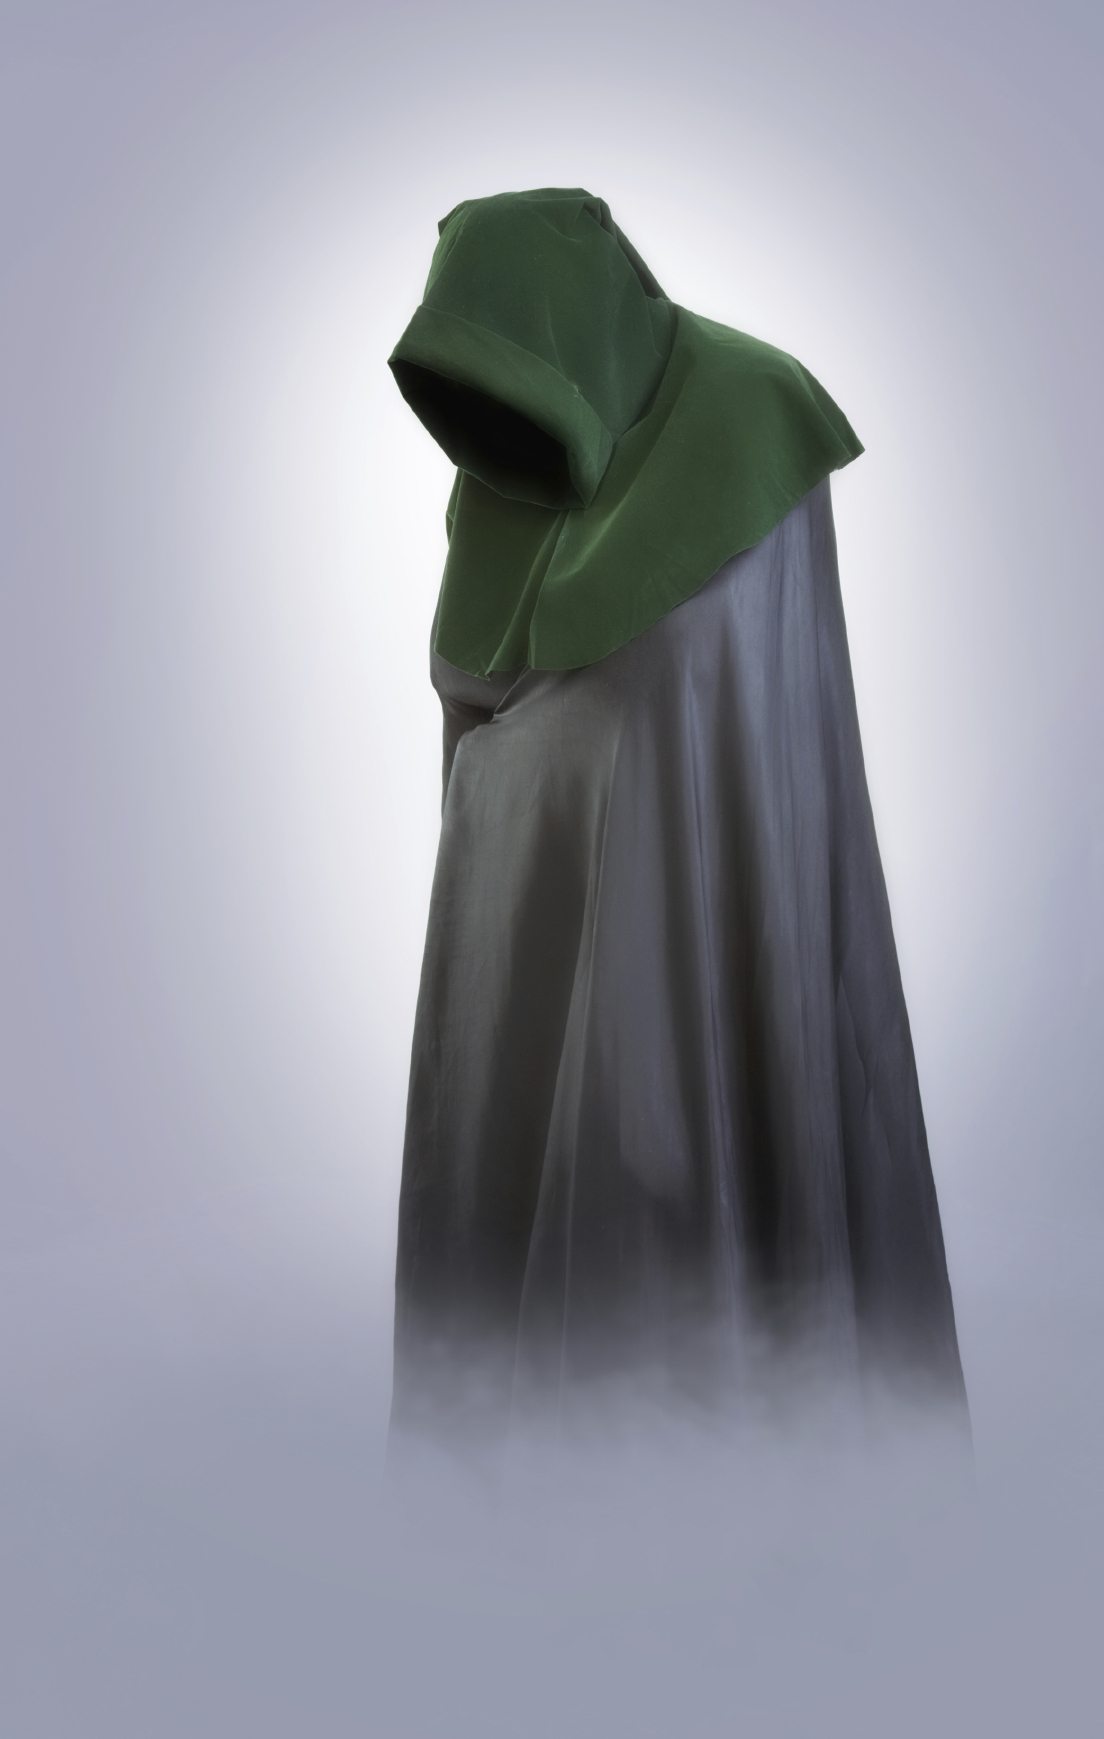 person in cloak